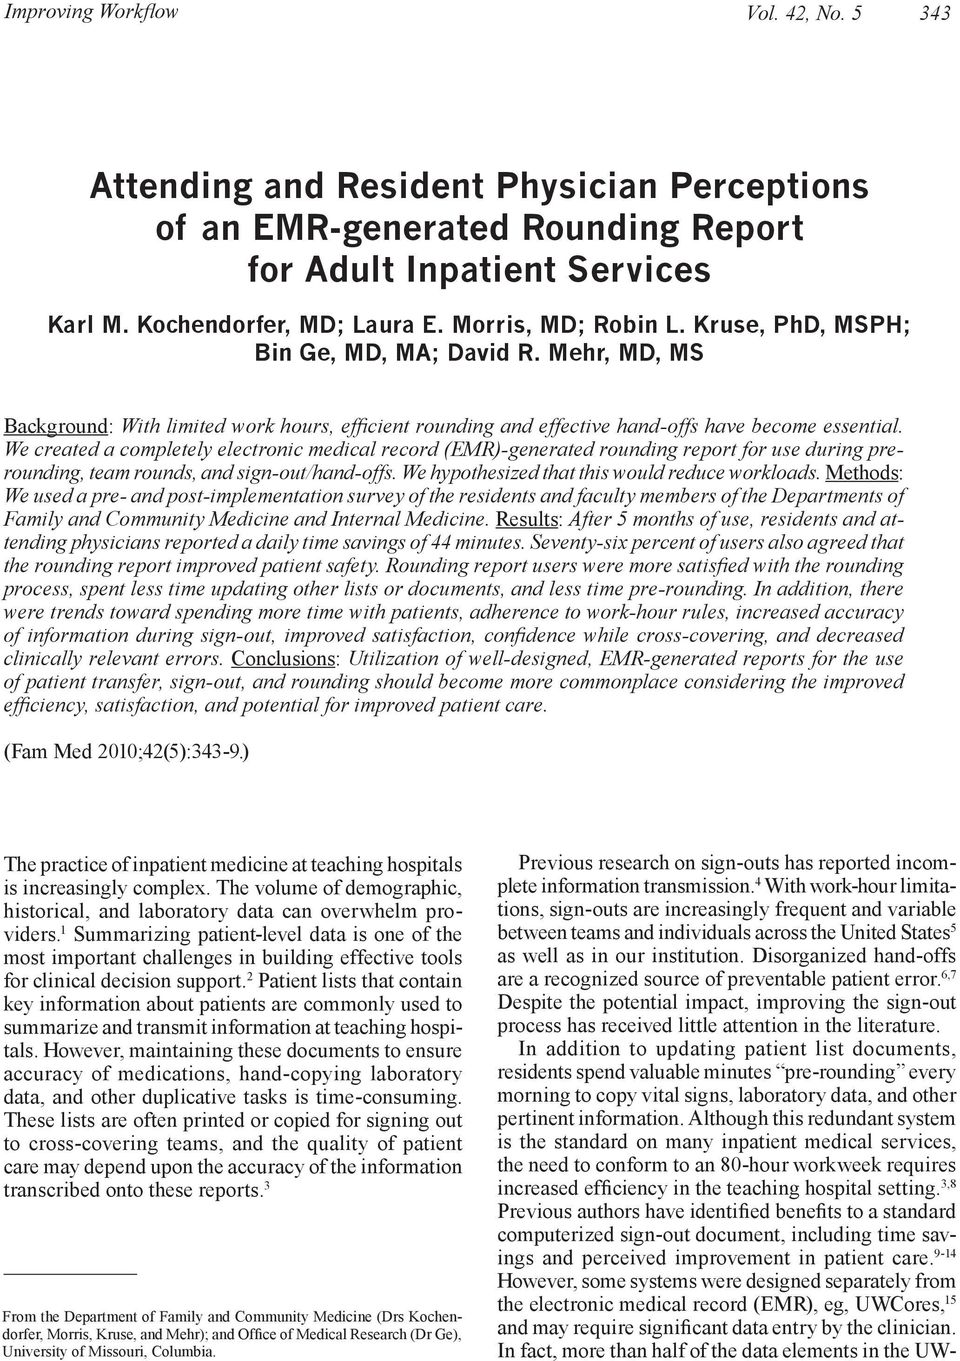 We created a completely electronic medical record (EMR)-generated rounding report for use during prerounding, team rounds, and sign-out/hand-offs. We hypothesized that this would reduce workloads.